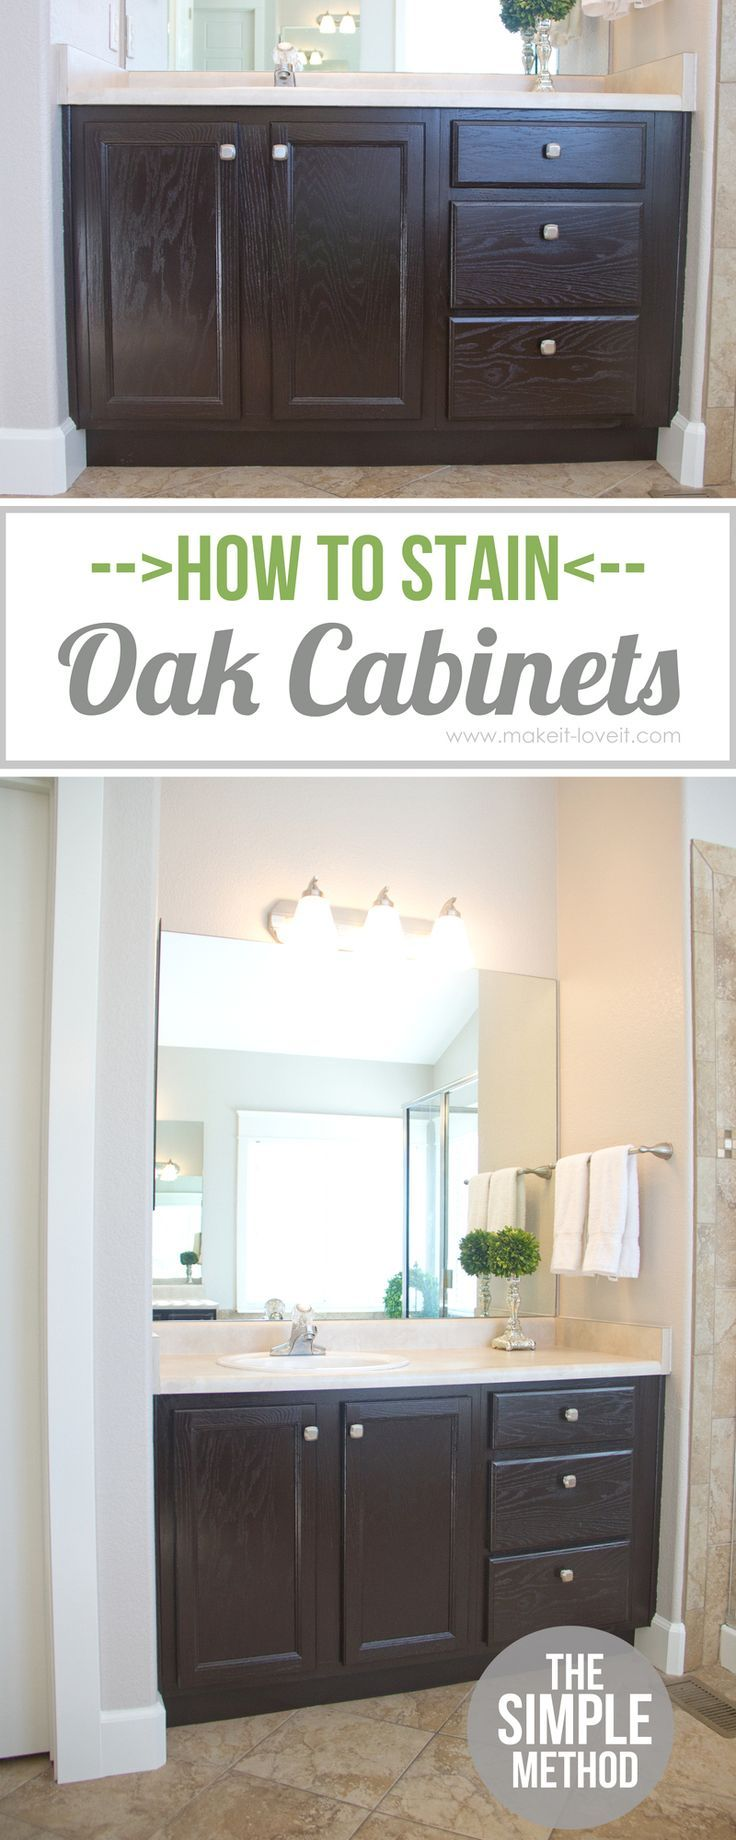 1000 Ideas About Staining Oak Cabinets On Pinterest Staining Kitchen Cabinets Stain Kitchen